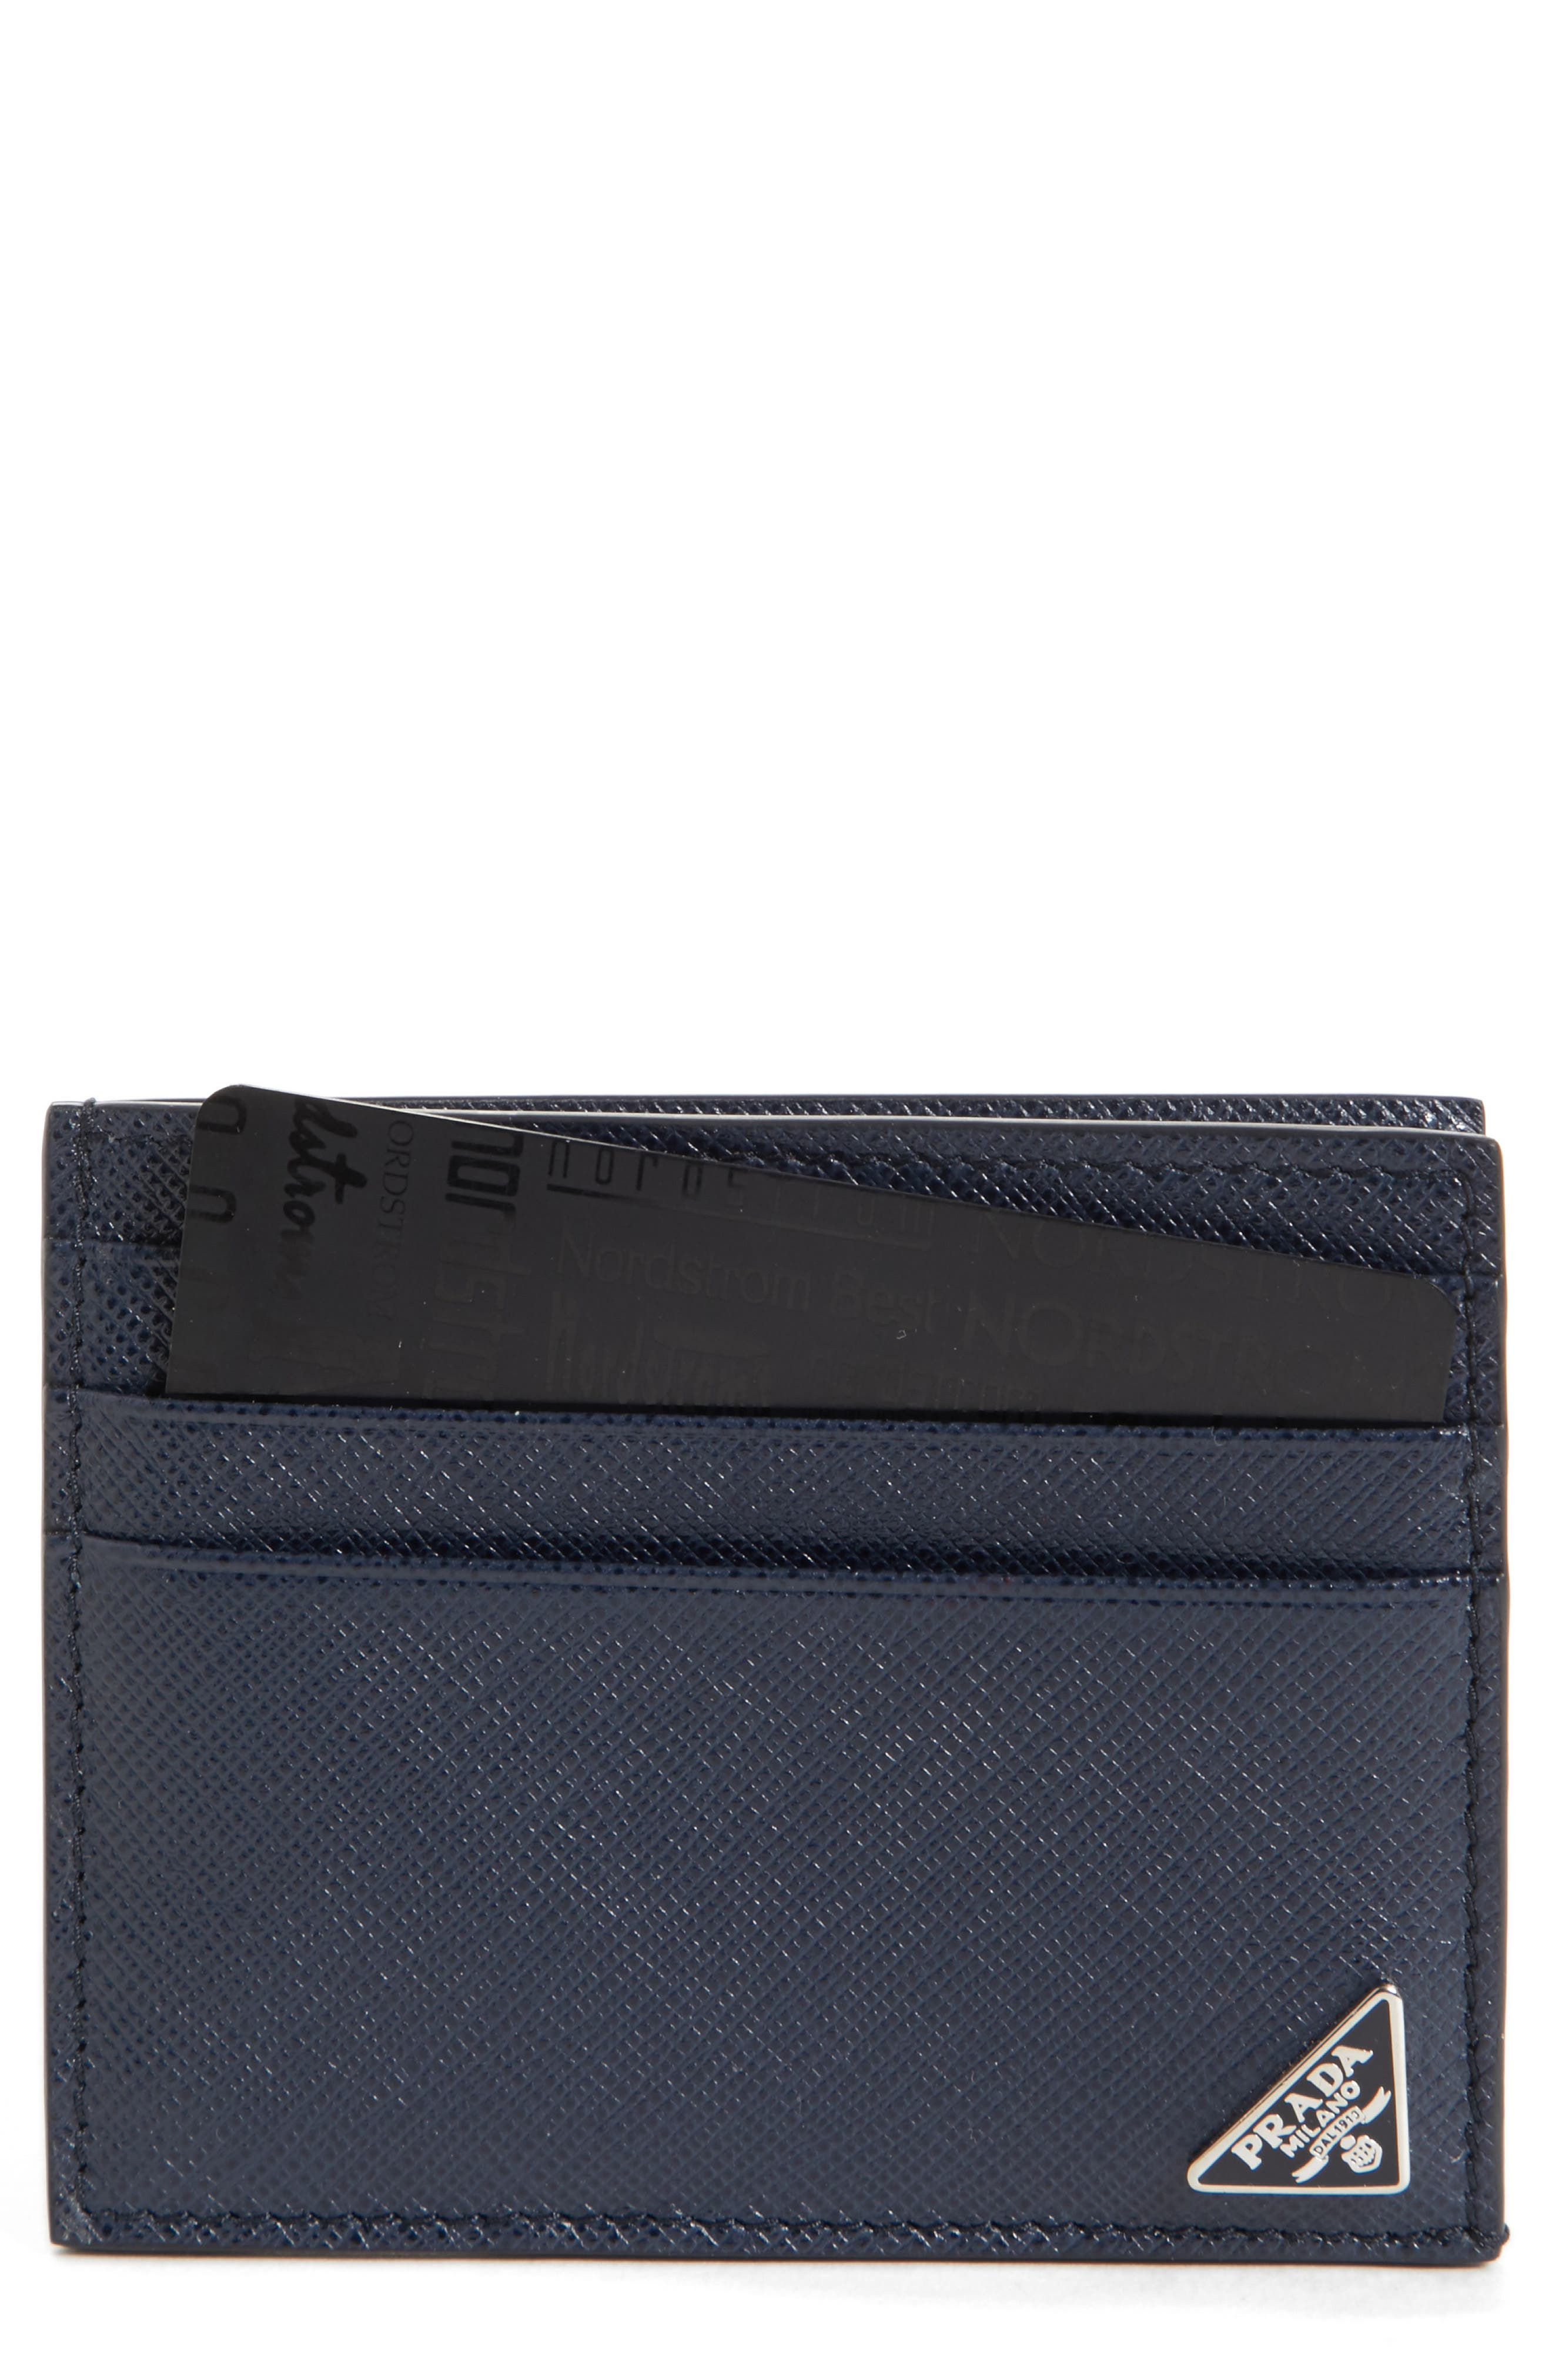 Card Cases for Men: Small, Bifold & Money Clips | Nordstrom